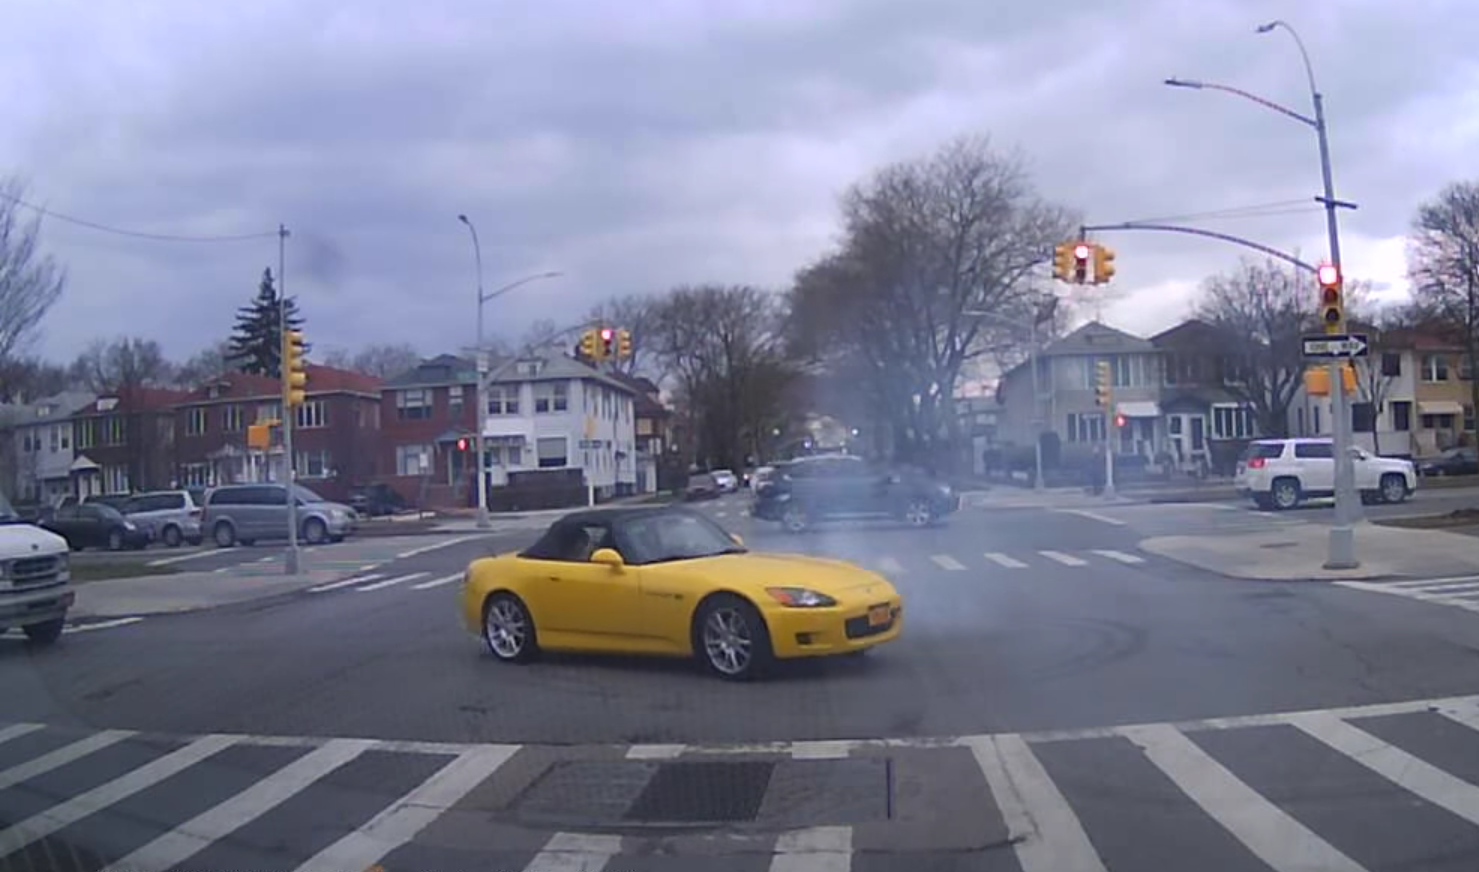 Honda S2000 Driver Goes 'Nuts At Traffic Lights